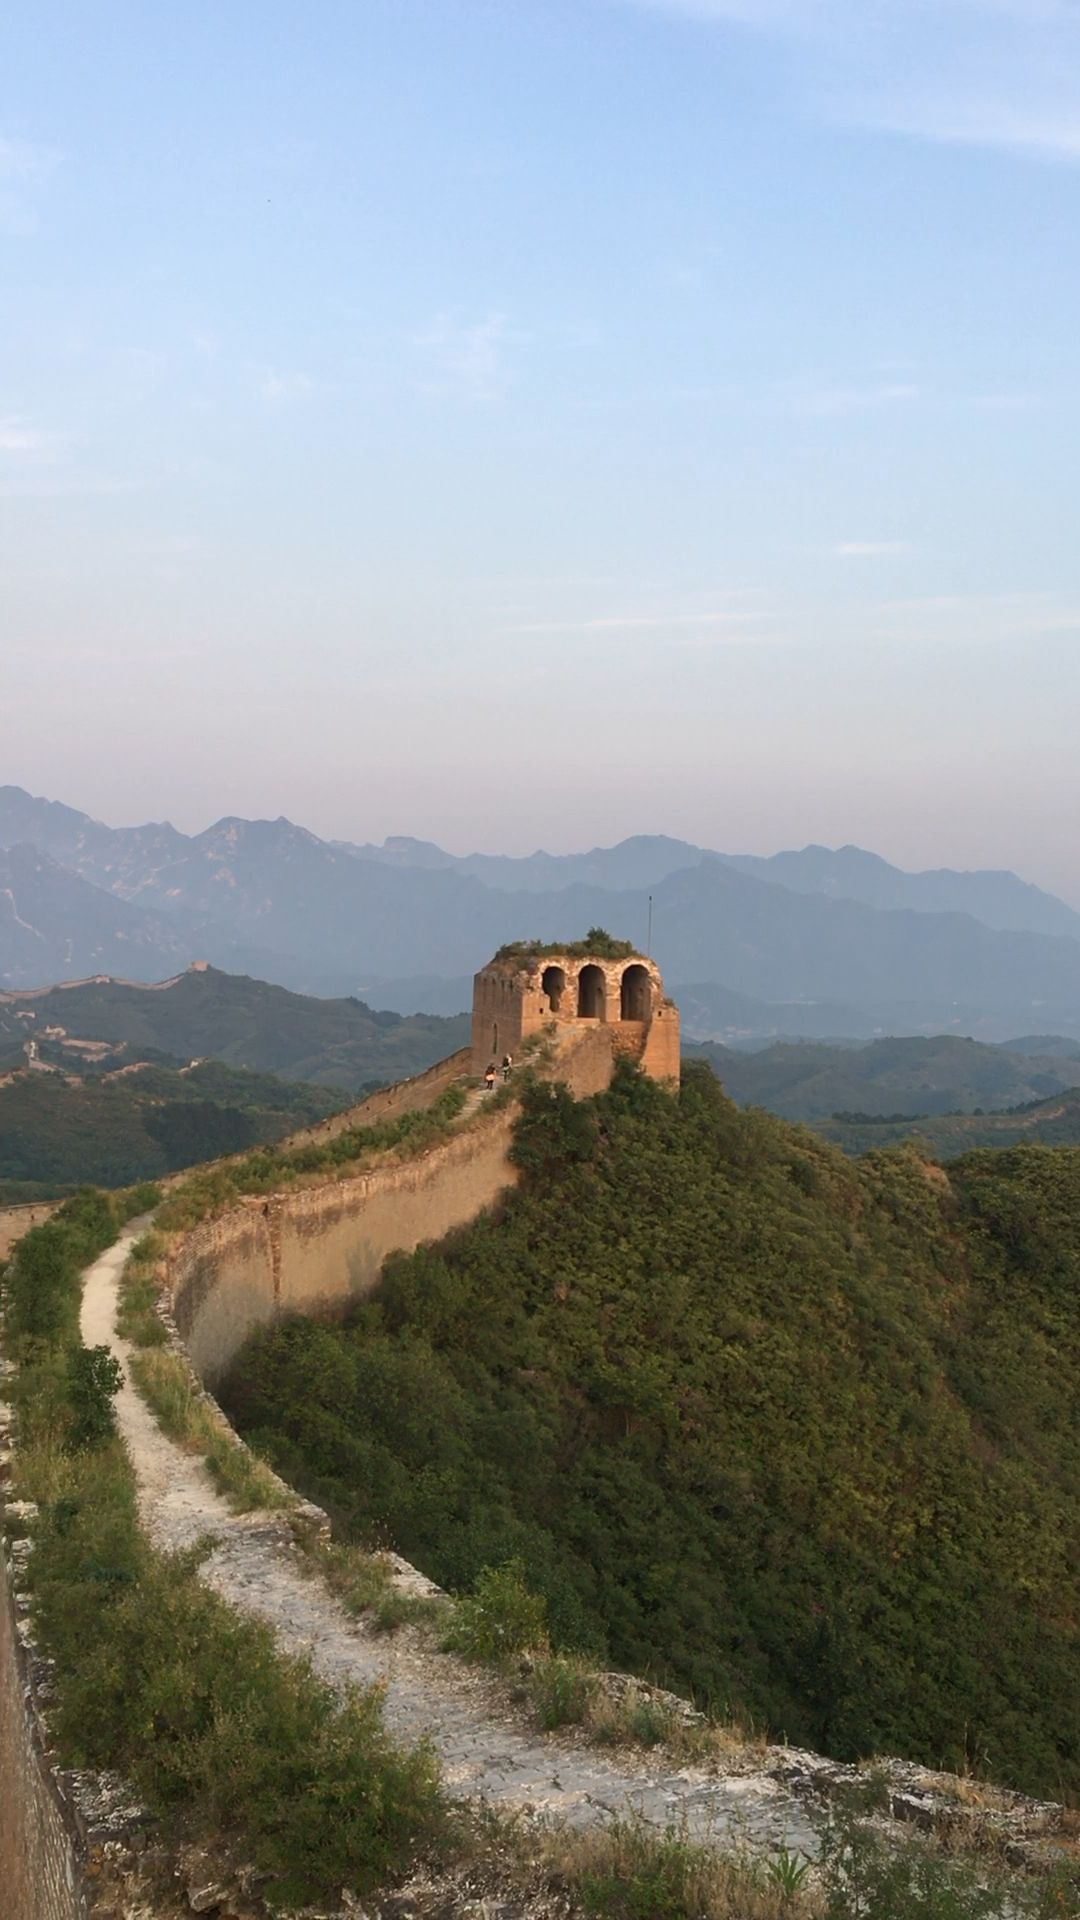 Guide To Hiking & Camping On The Great Wall Of China